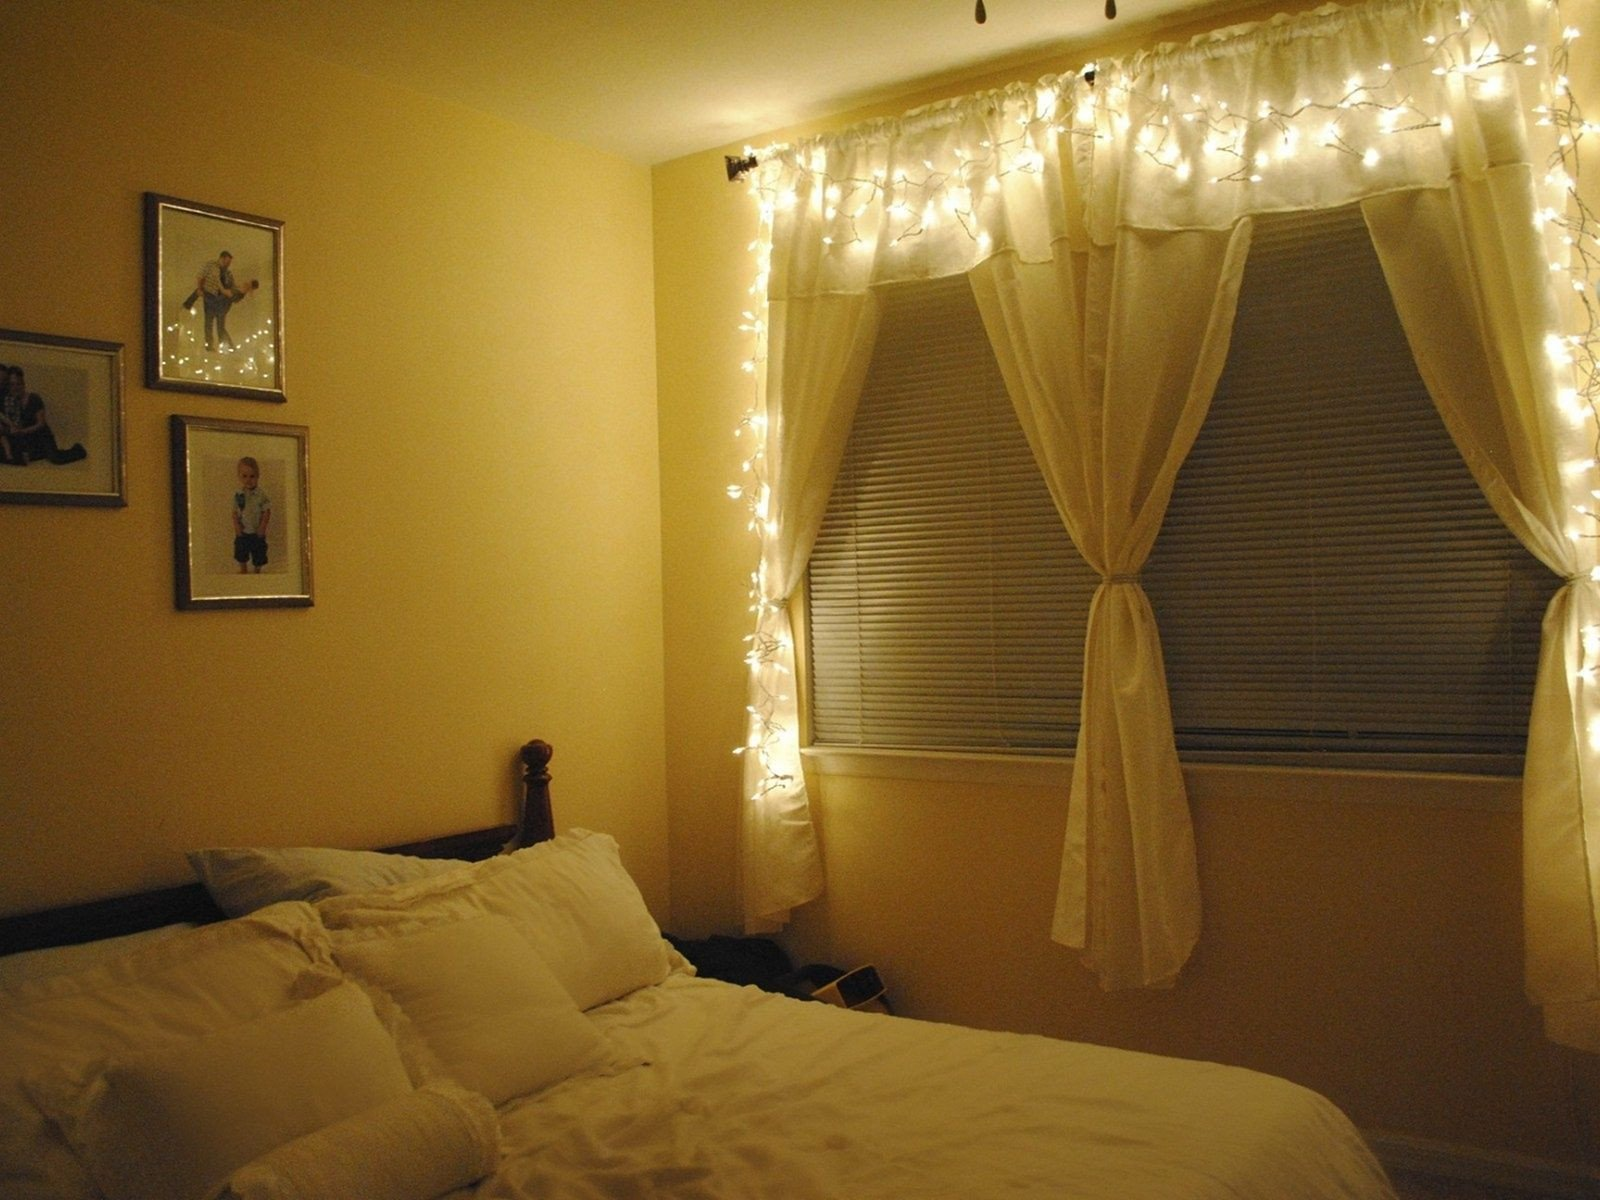 Christmas Light for Bedroom Unique 35 Amazing Christmas Light Bedroom Decoration Ideas